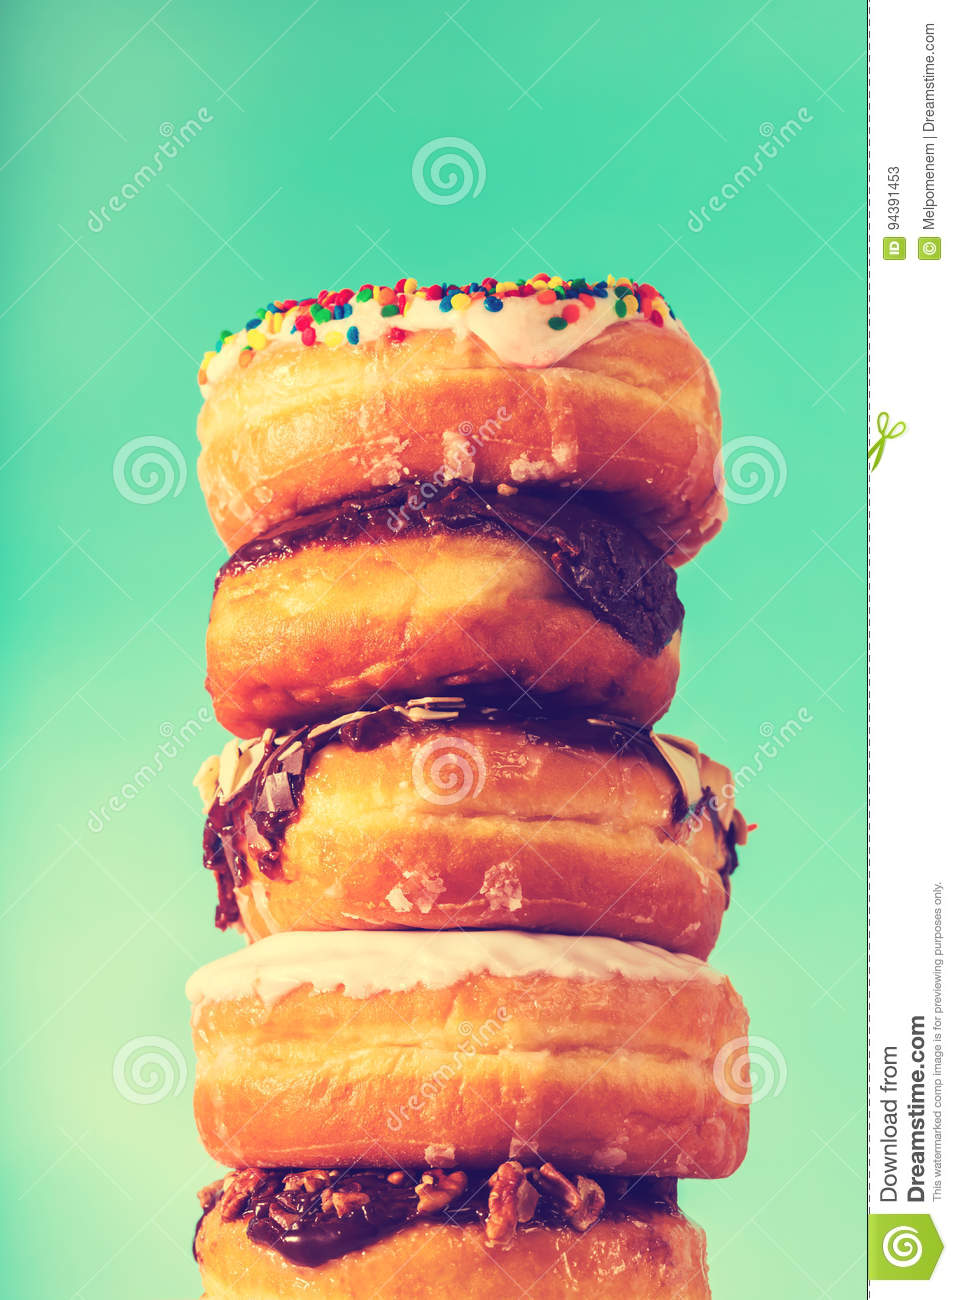 Stack of assorted donuts on blue green background